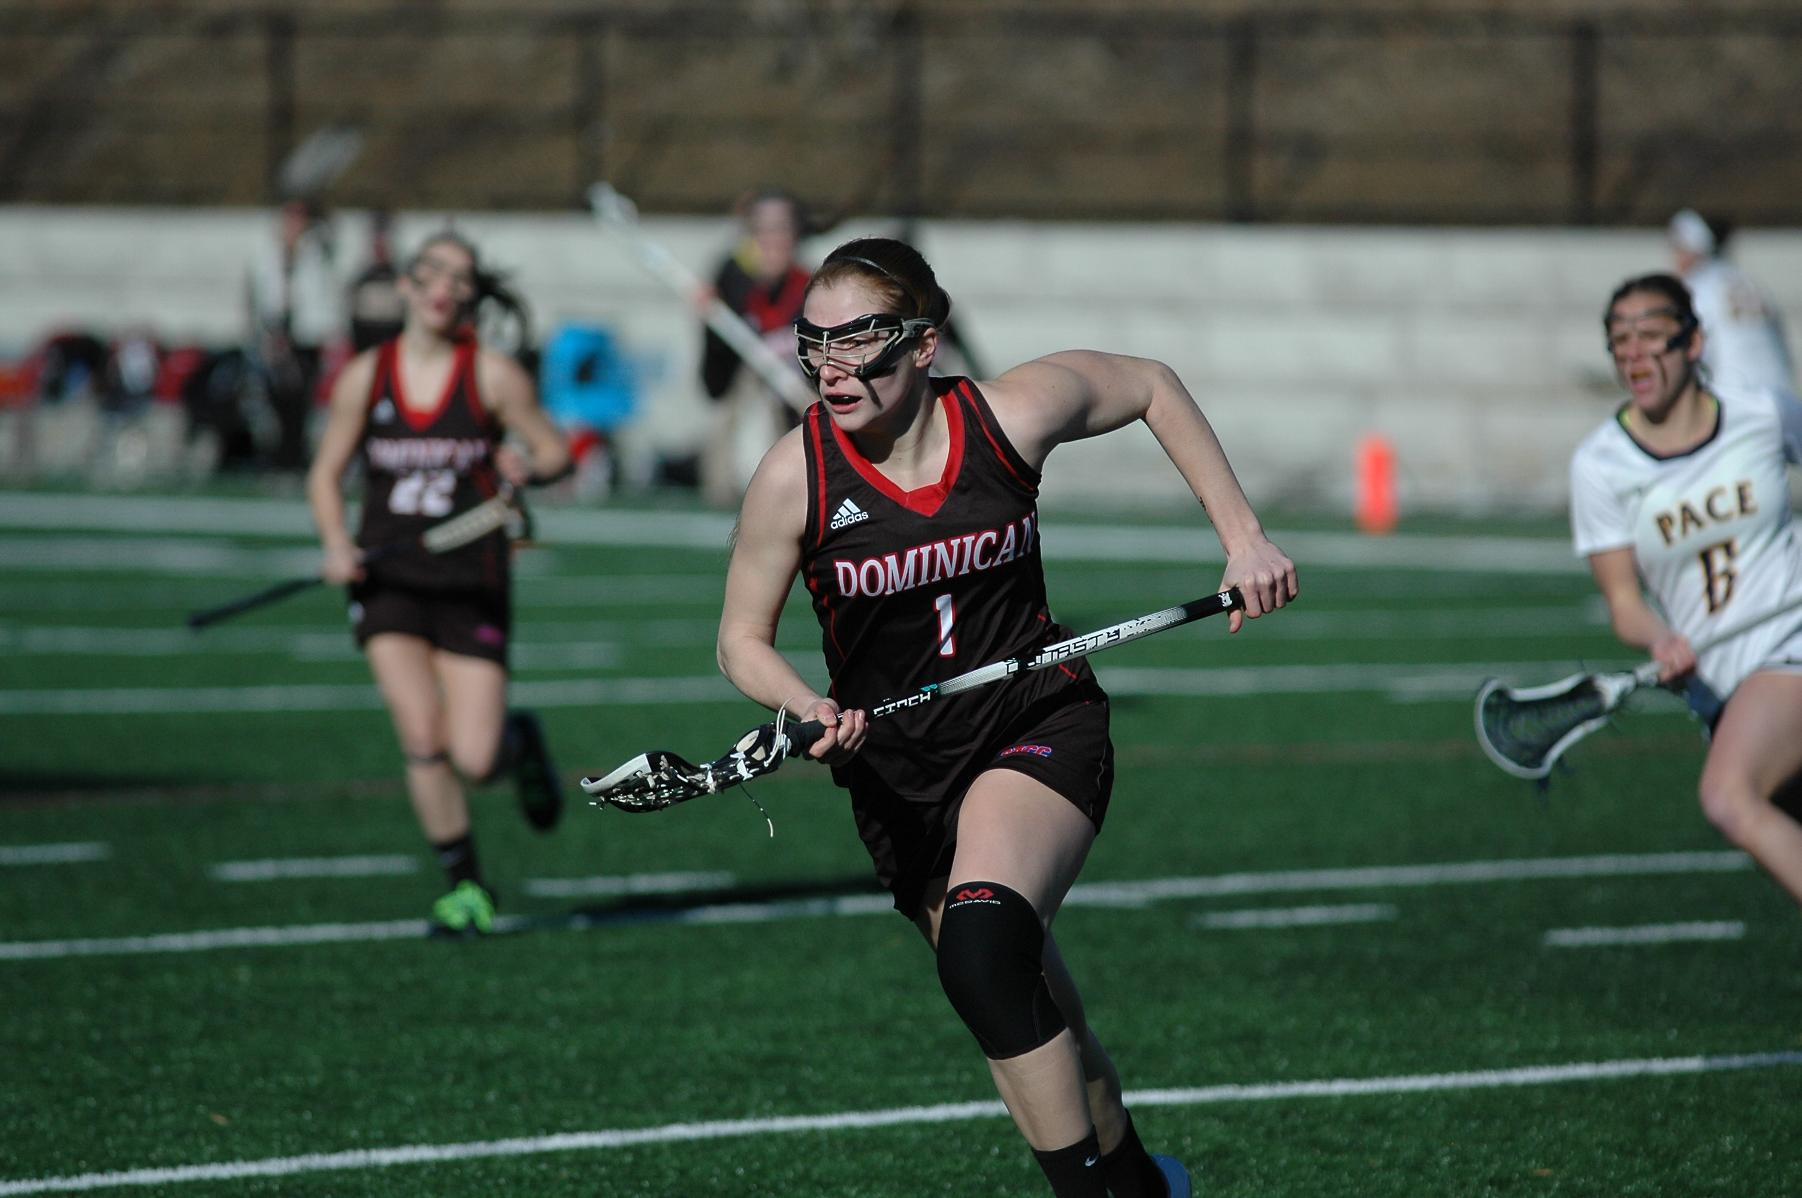 FIRST HALF RUN LEADS SPARTANS OVER WOMEN'S LACROSSE